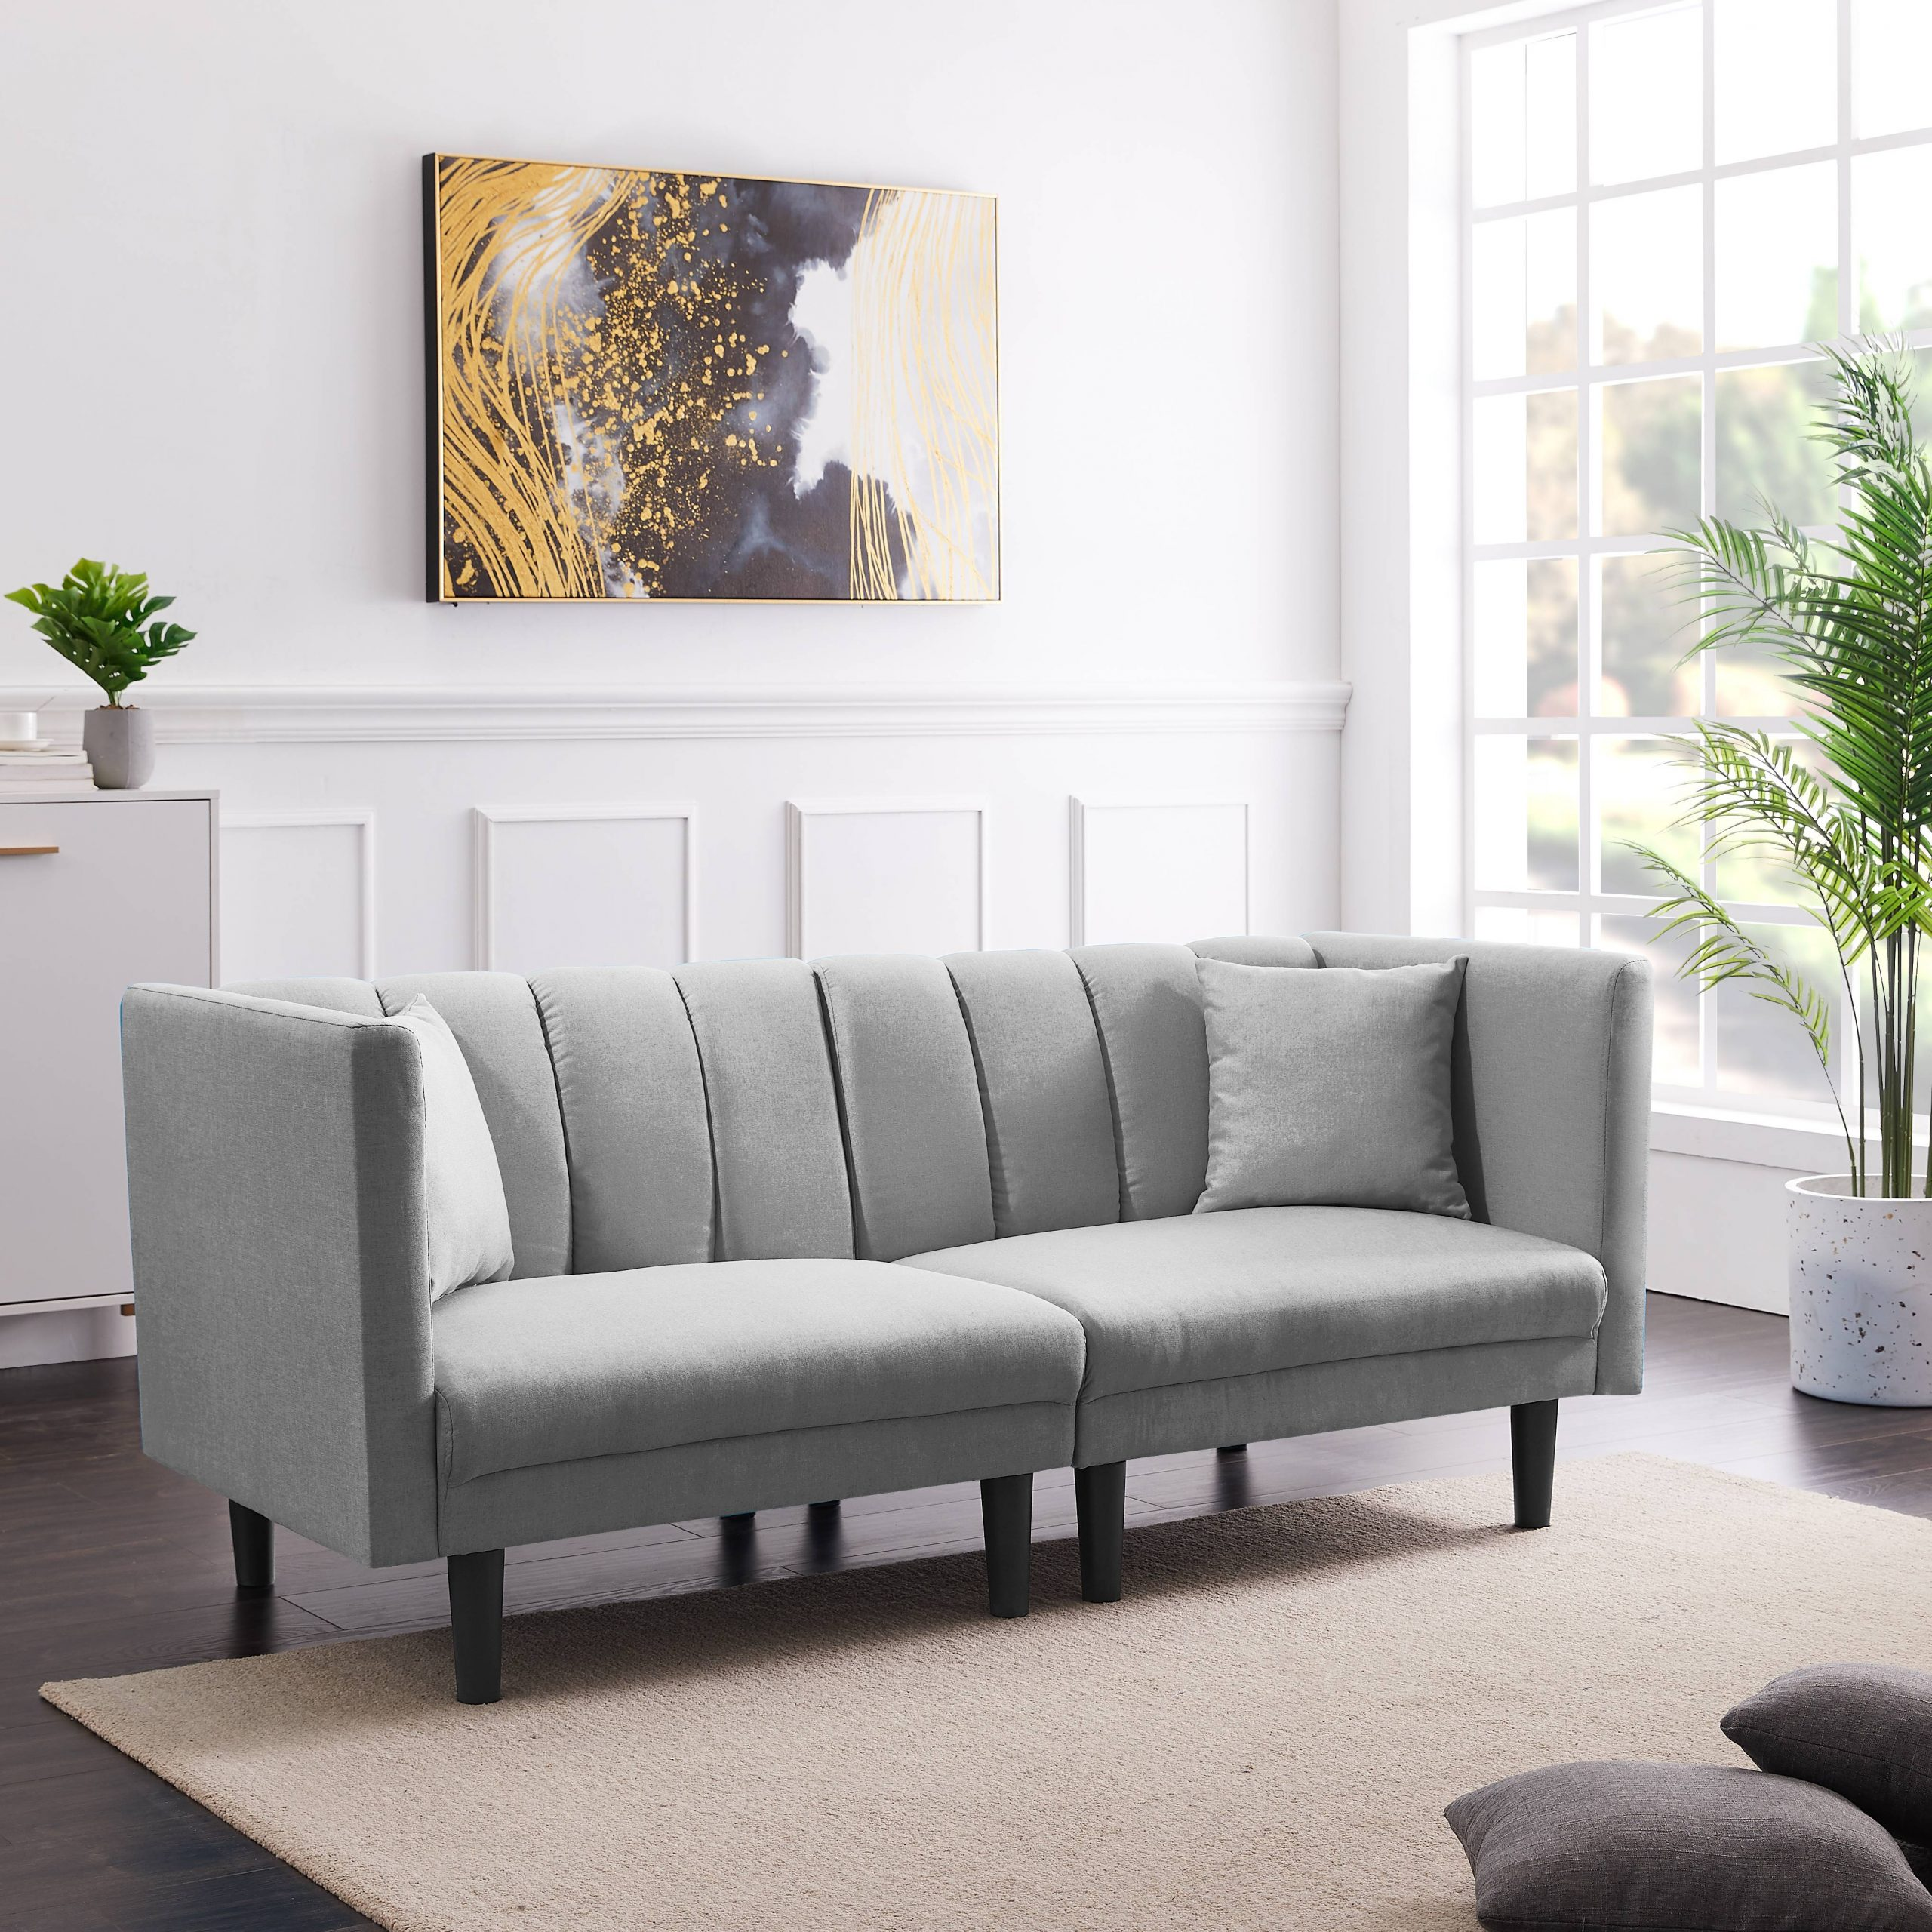 Futon Couch Bed, Modern Fabric Twin Sofa Sleeper Bed With With Fashionable Prato Storage Sectional Futon Sofas (View 3 of 20)